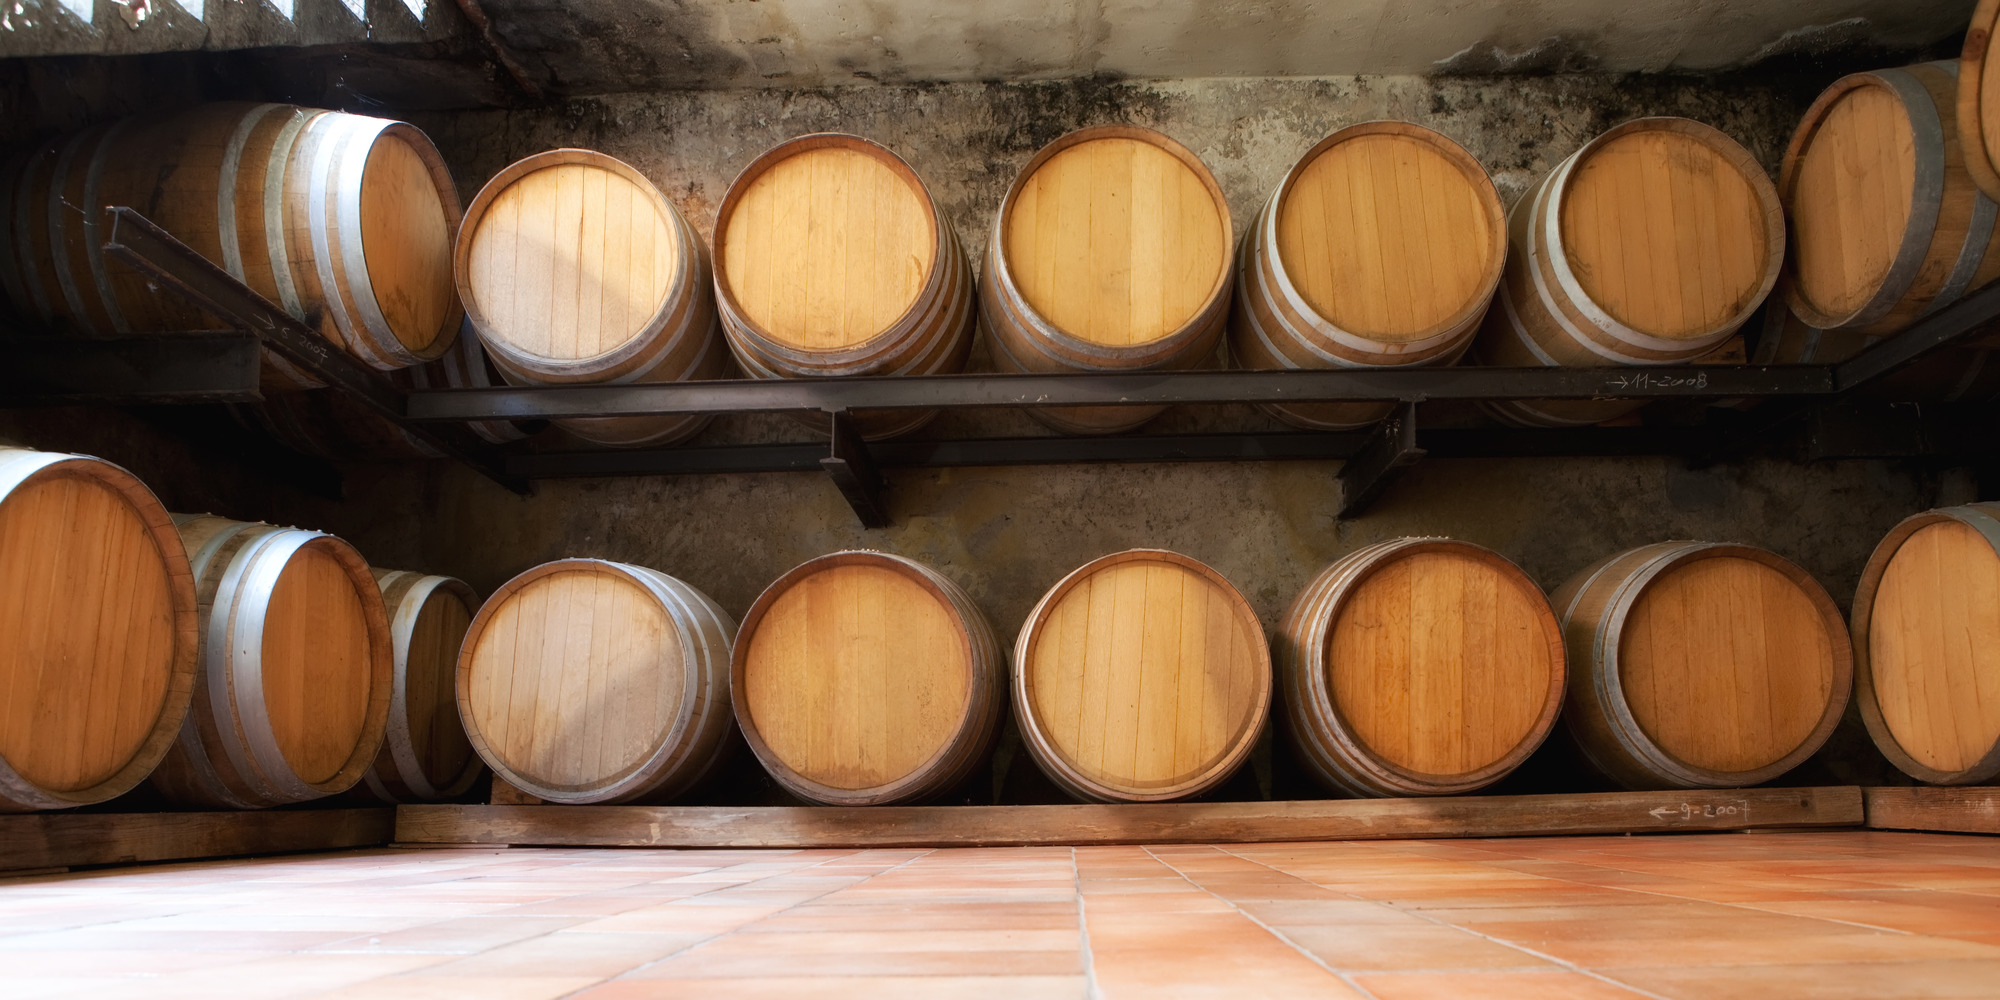 photodune-1237614-wine-barrels-m